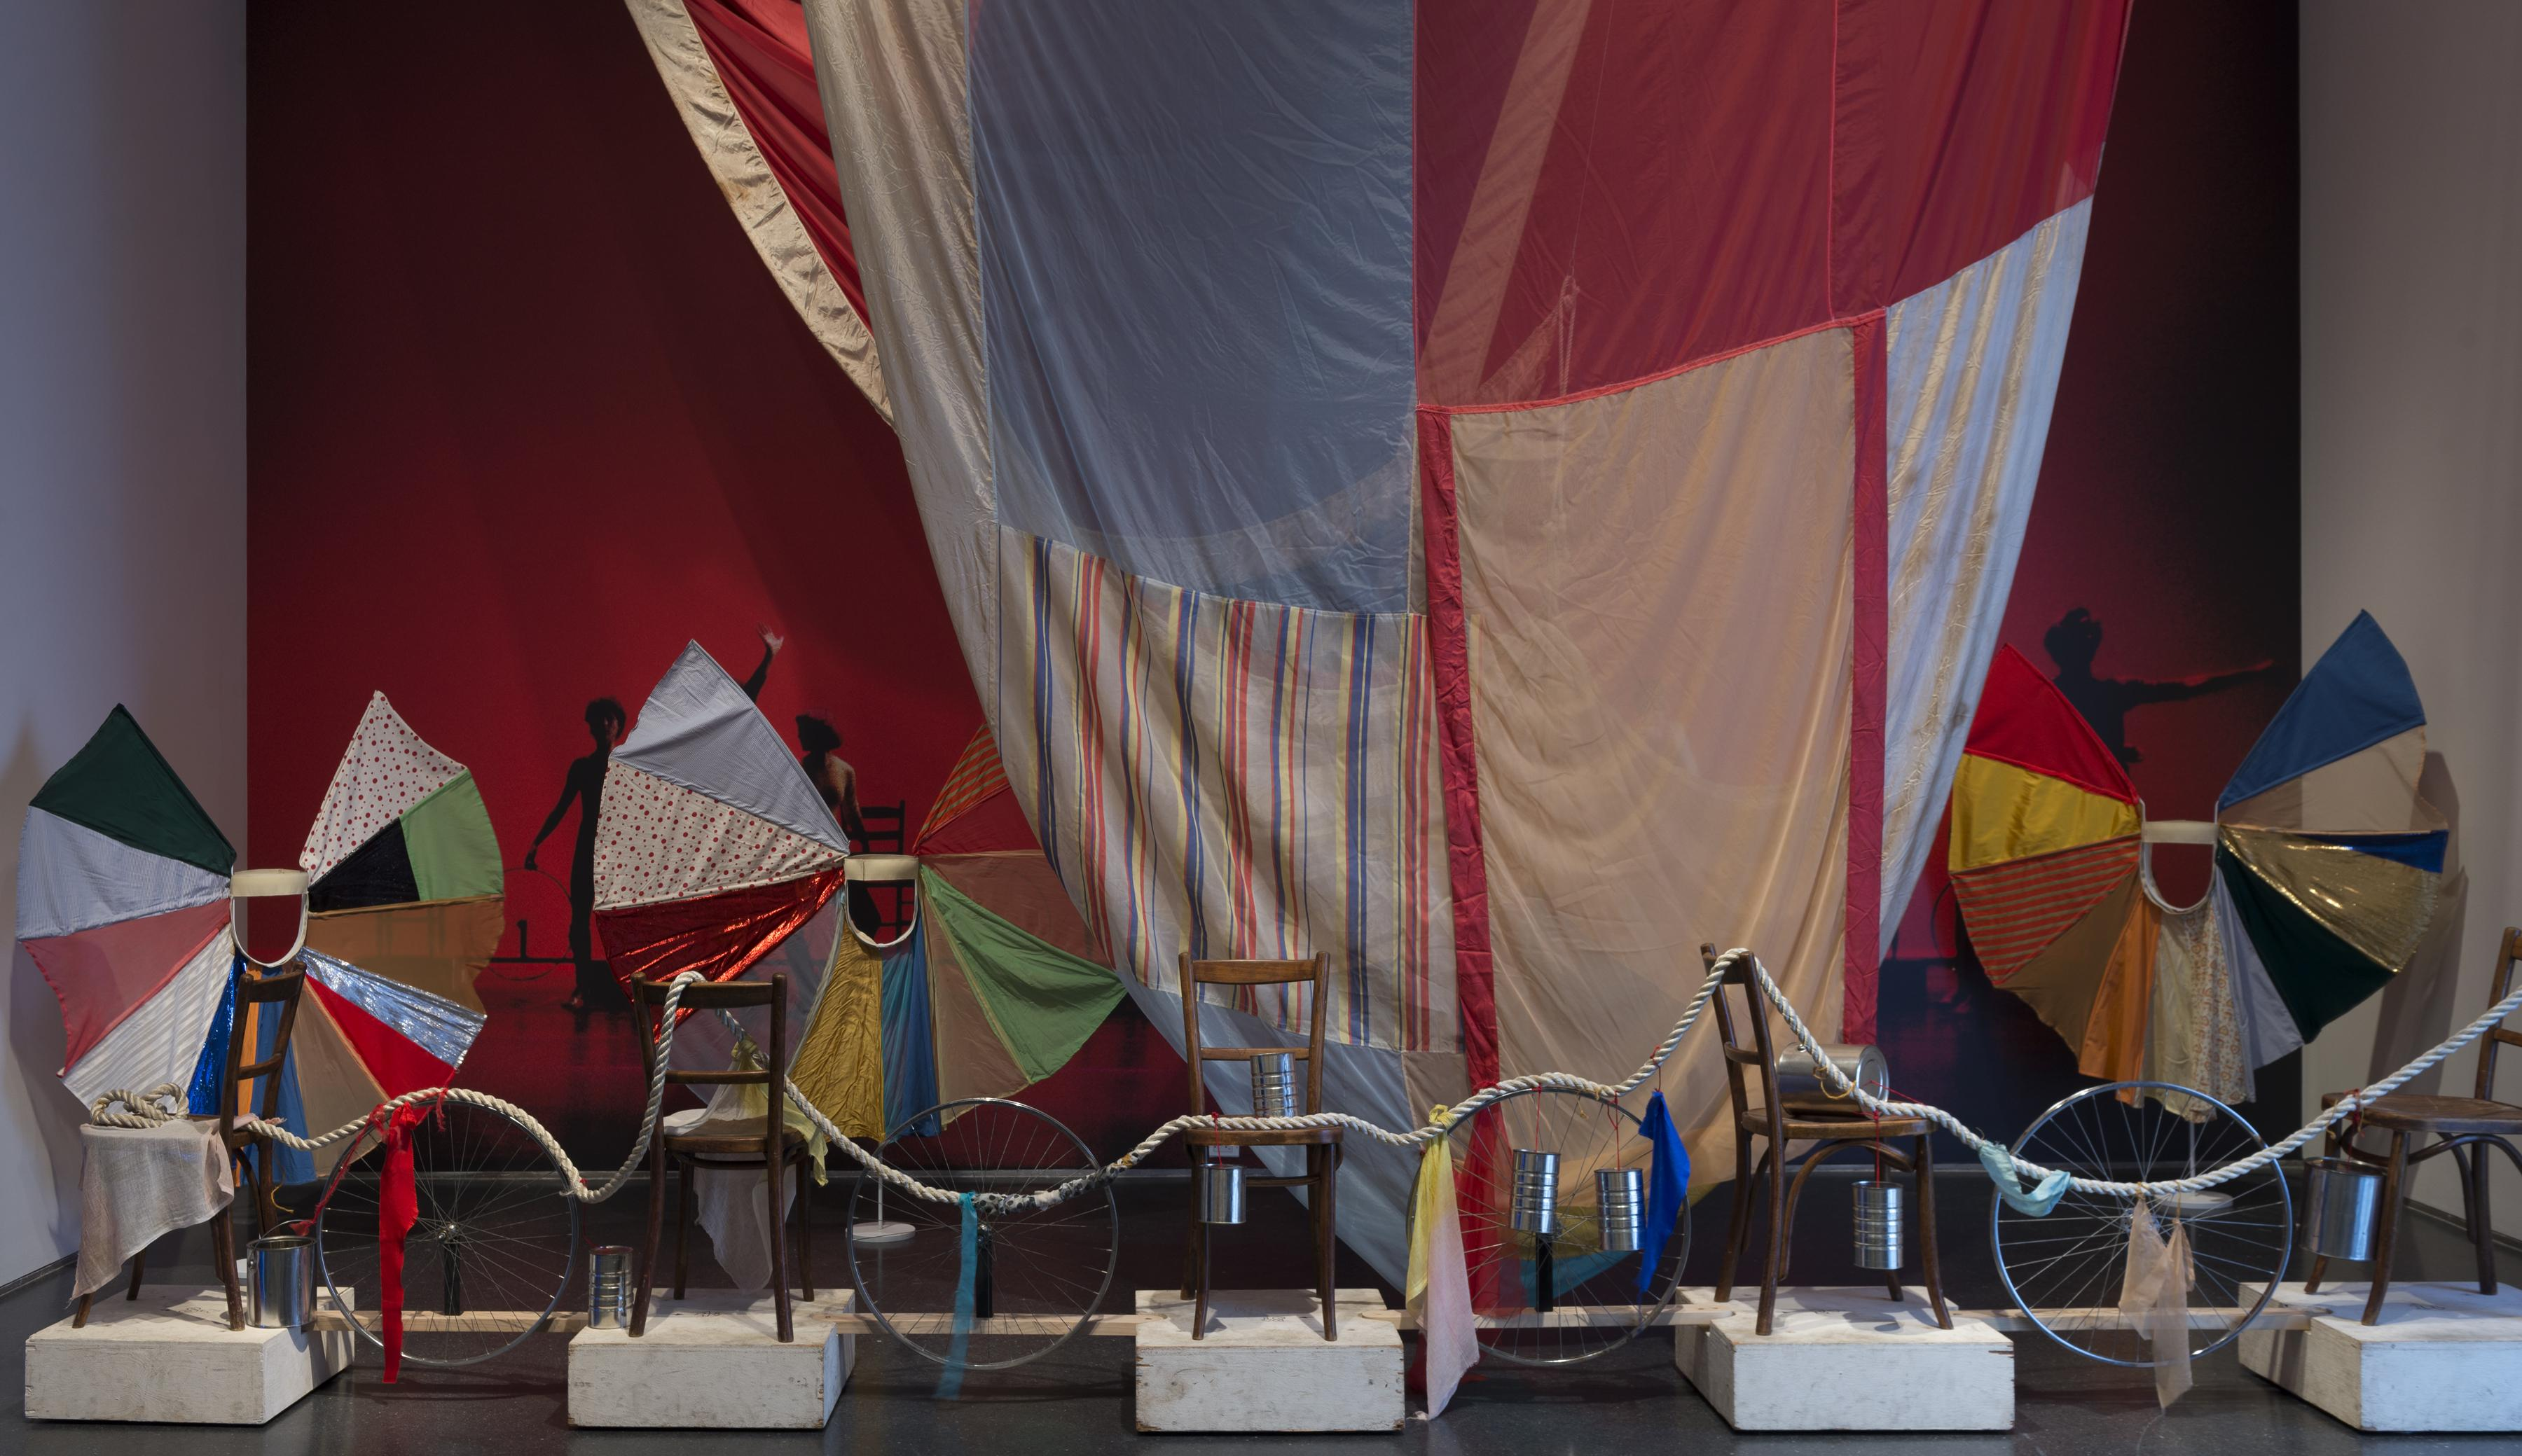 A thick white rope drapes across a row of chairs sitting on white blocks interspersed with silver bicycle tires. Behind them, a multicolor quilted fabric hangs from the ceiling in front of a red wall, and three smaller quilted fabrics fan out in imperfect circles.